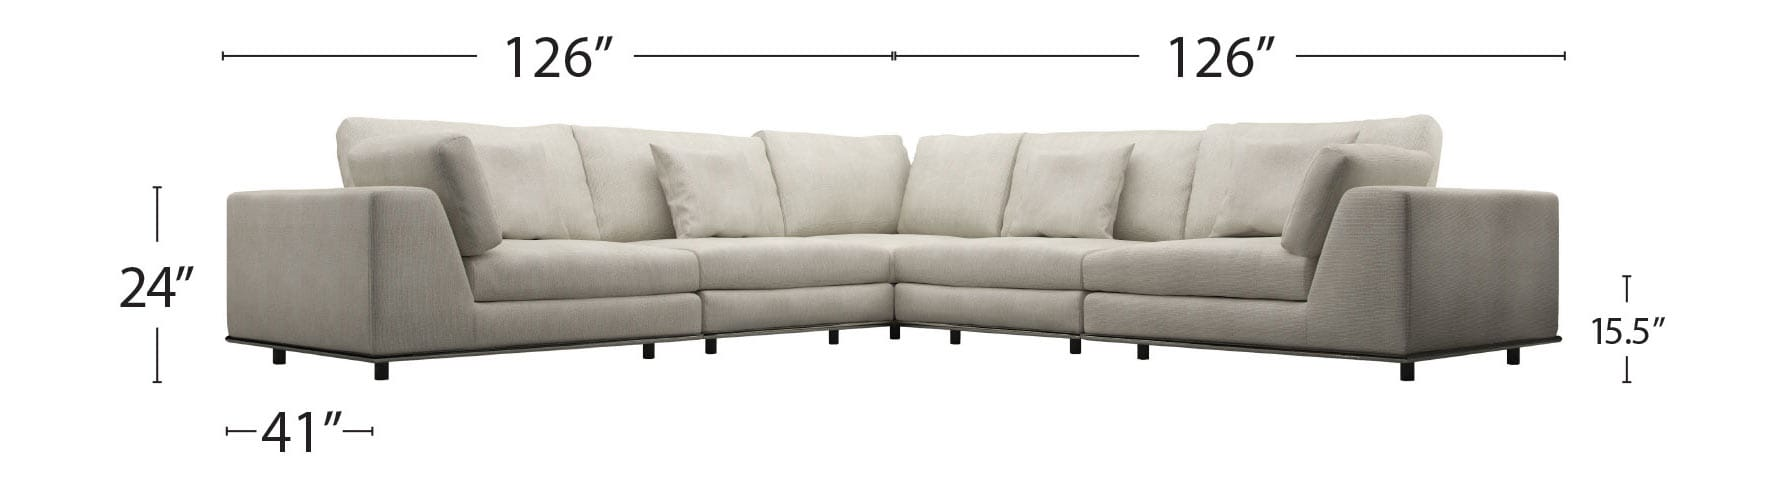 Sectional Corner Couch Perry 2 Arm Corner Sectional Sofa Moonbeam By Modloft